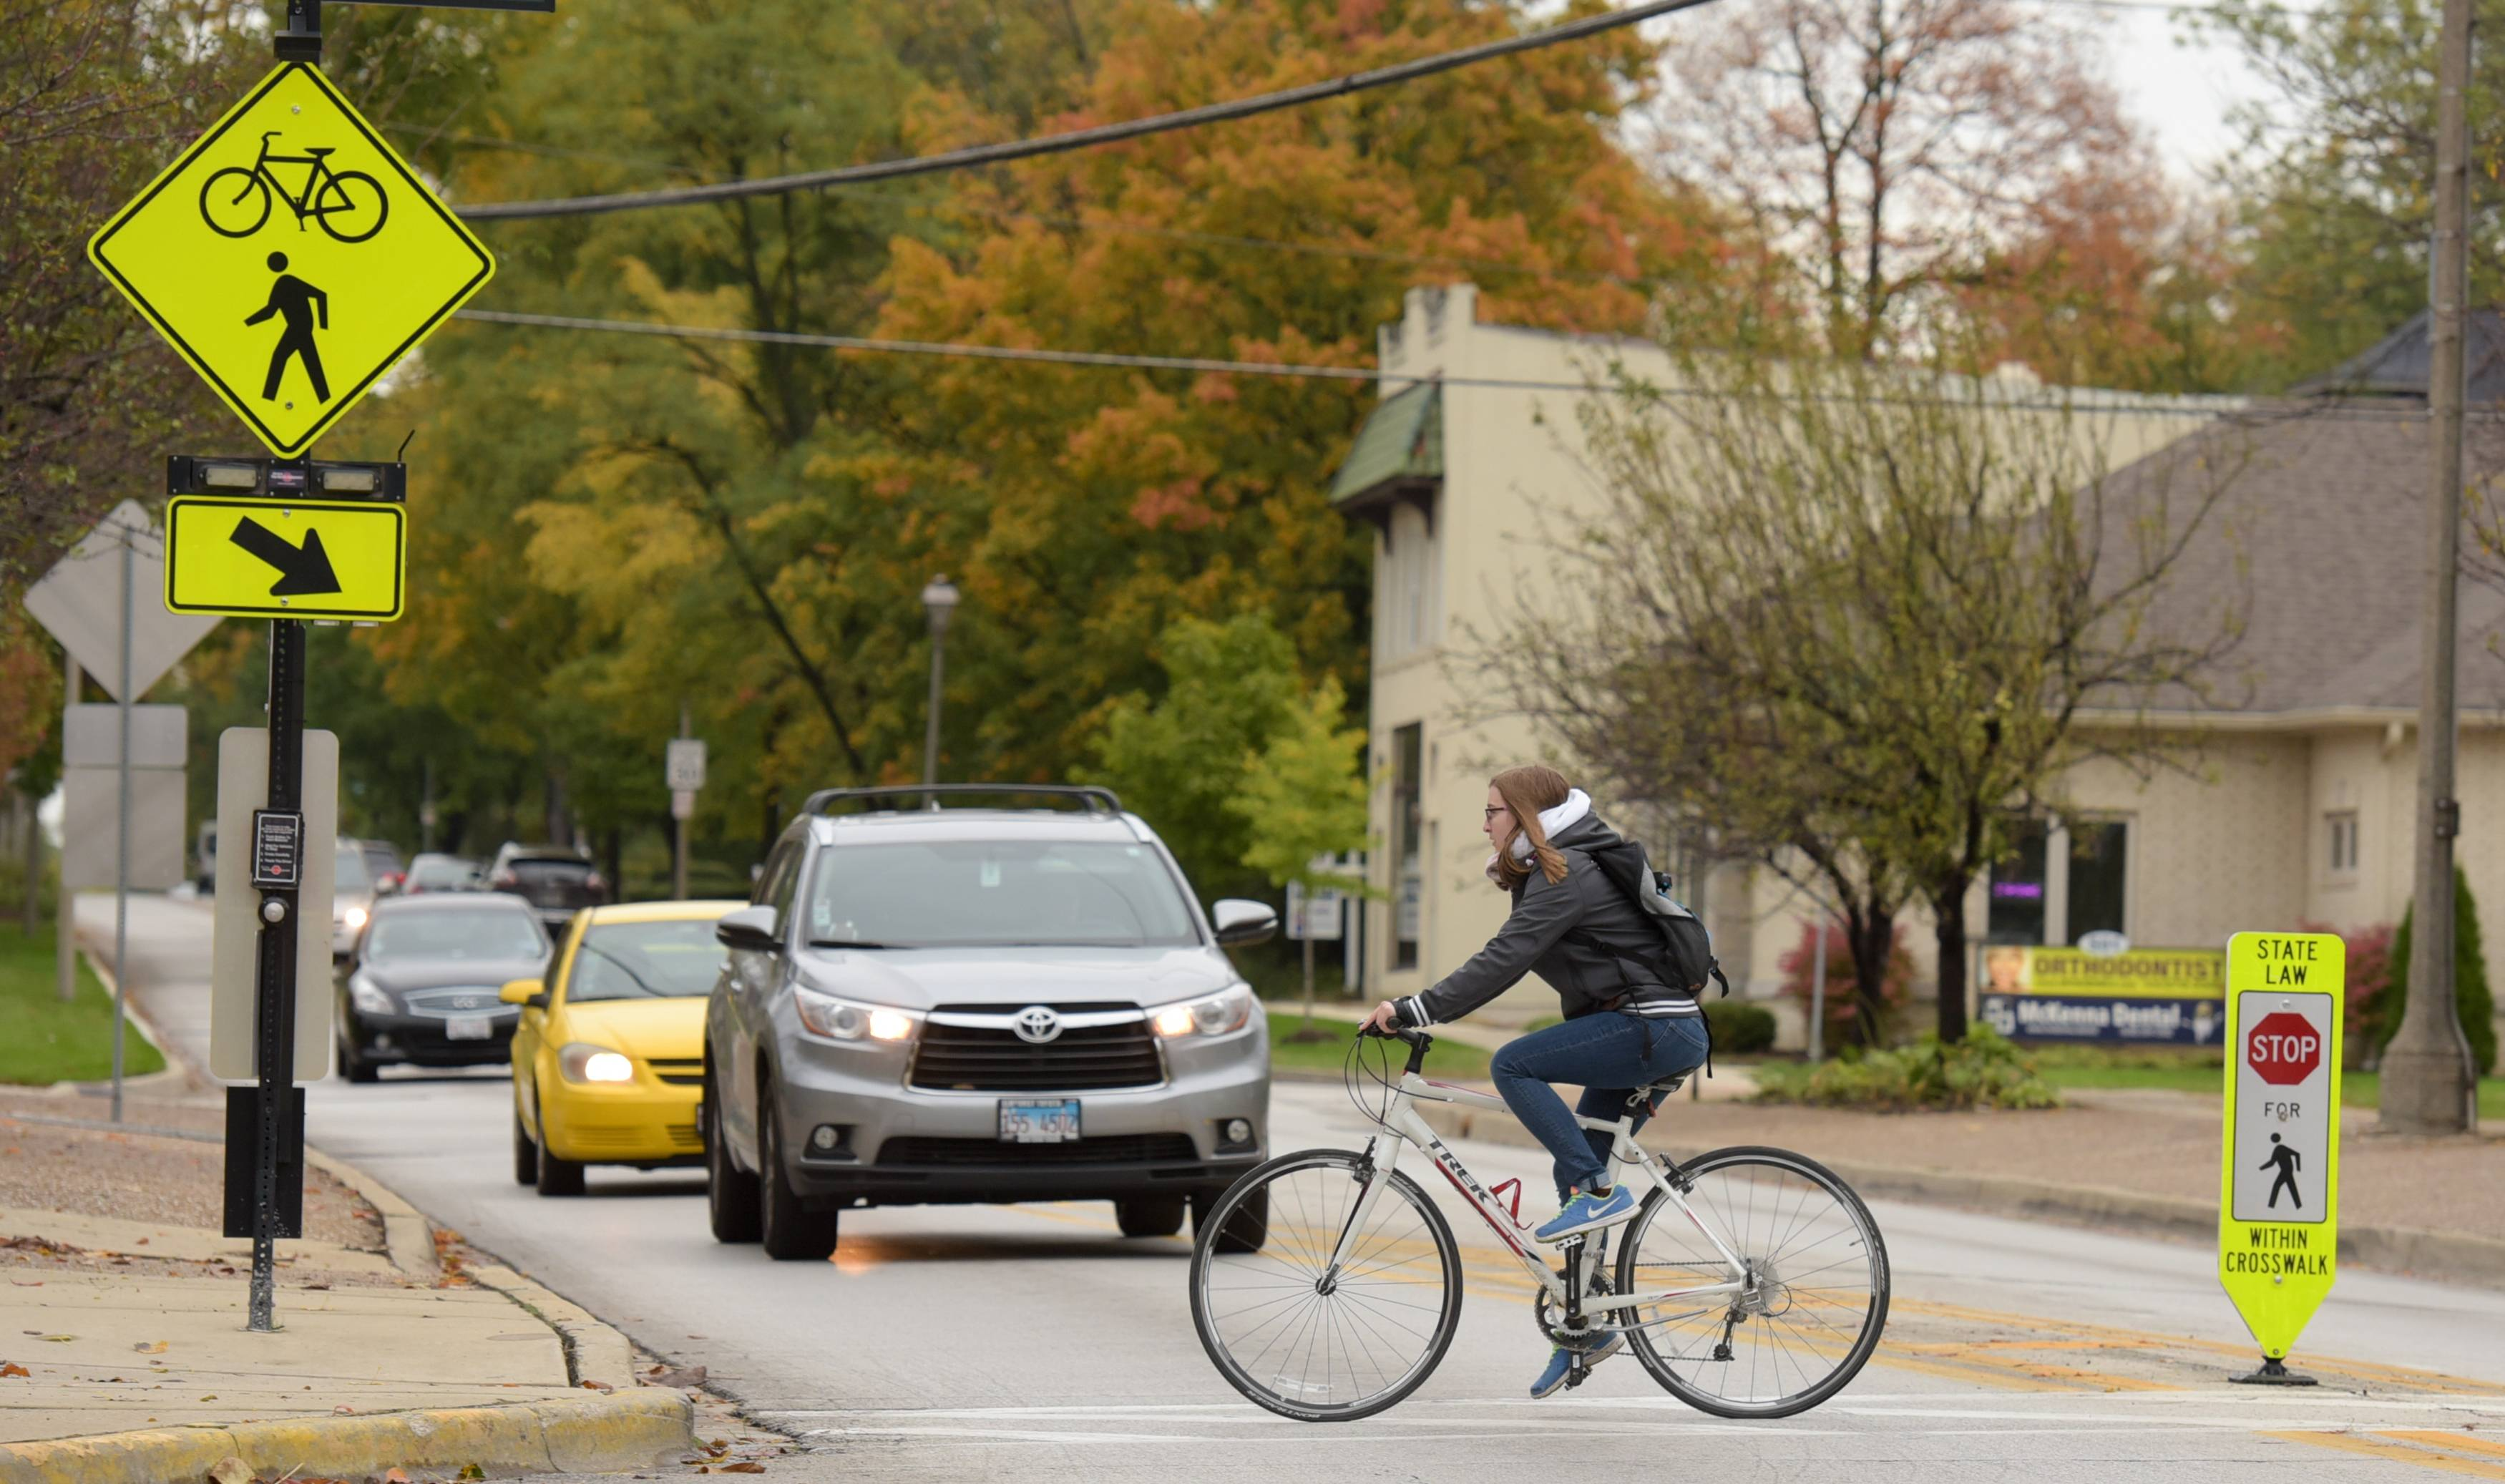 Safety concerns push Elmhurst to study Prairie Path crossing